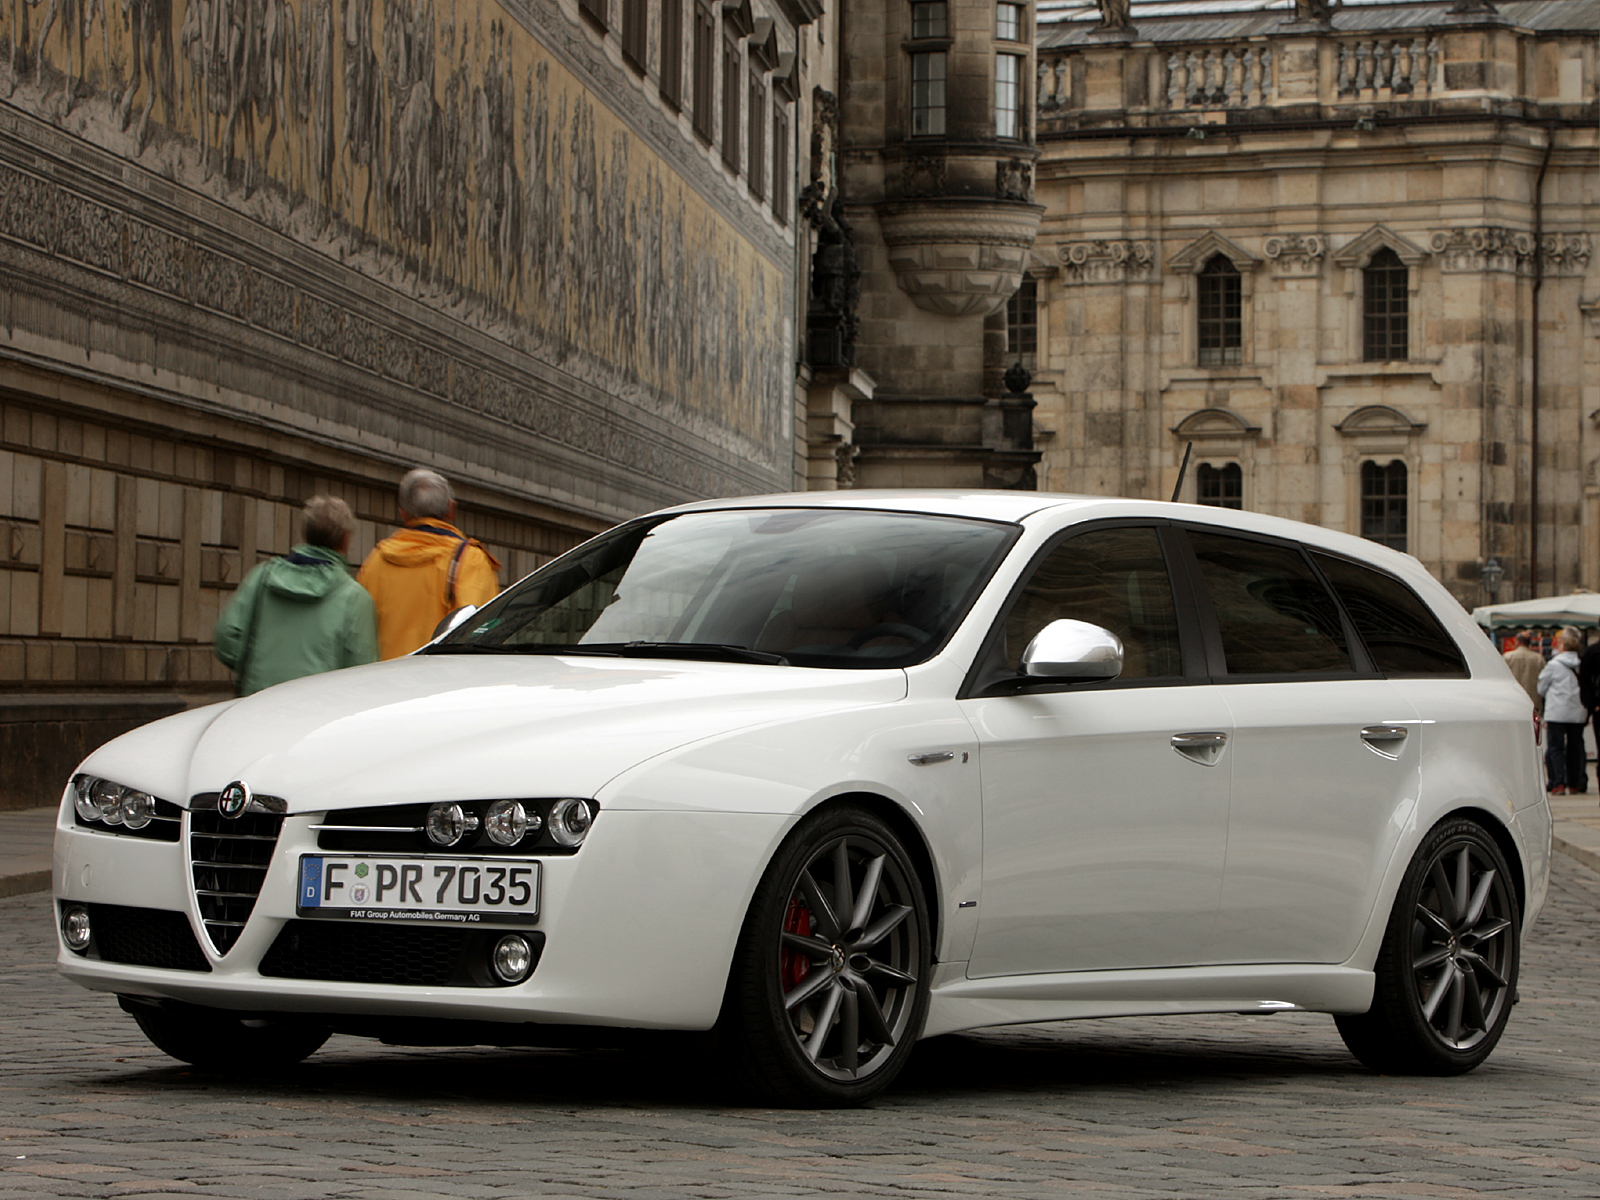 alfa romeo 159 cars specifications technical data. Black Bedroom Furniture Sets. Home Design Ideas